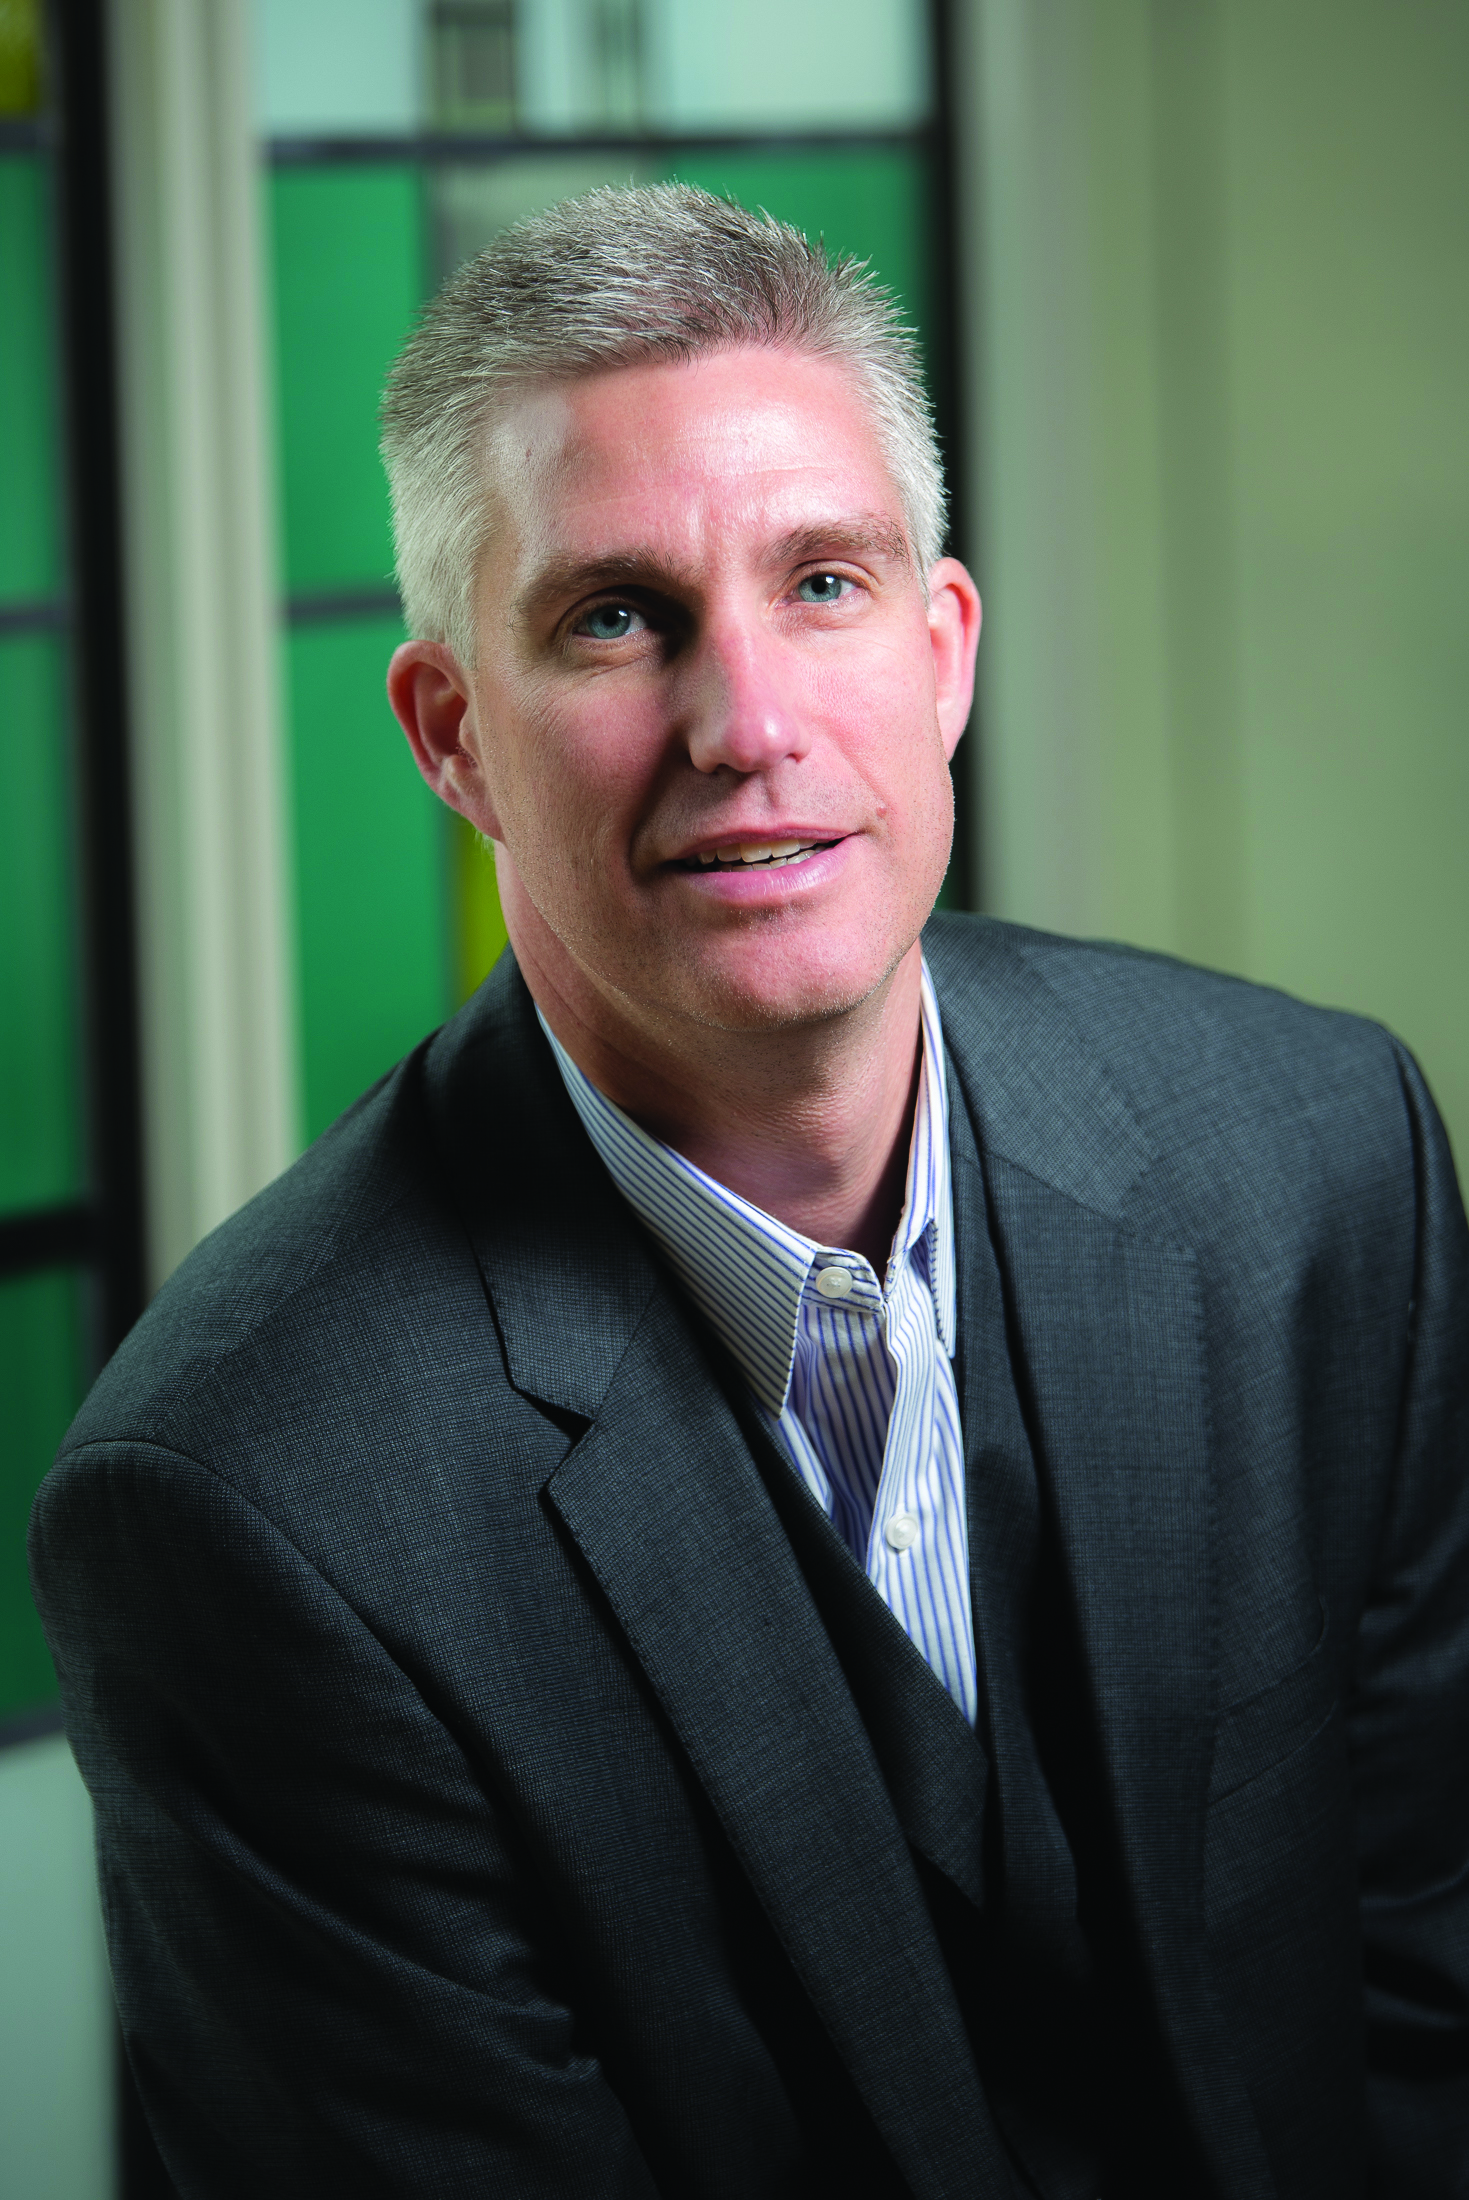 David Souder, associate professor of management and academic director for the Executive MBA Program